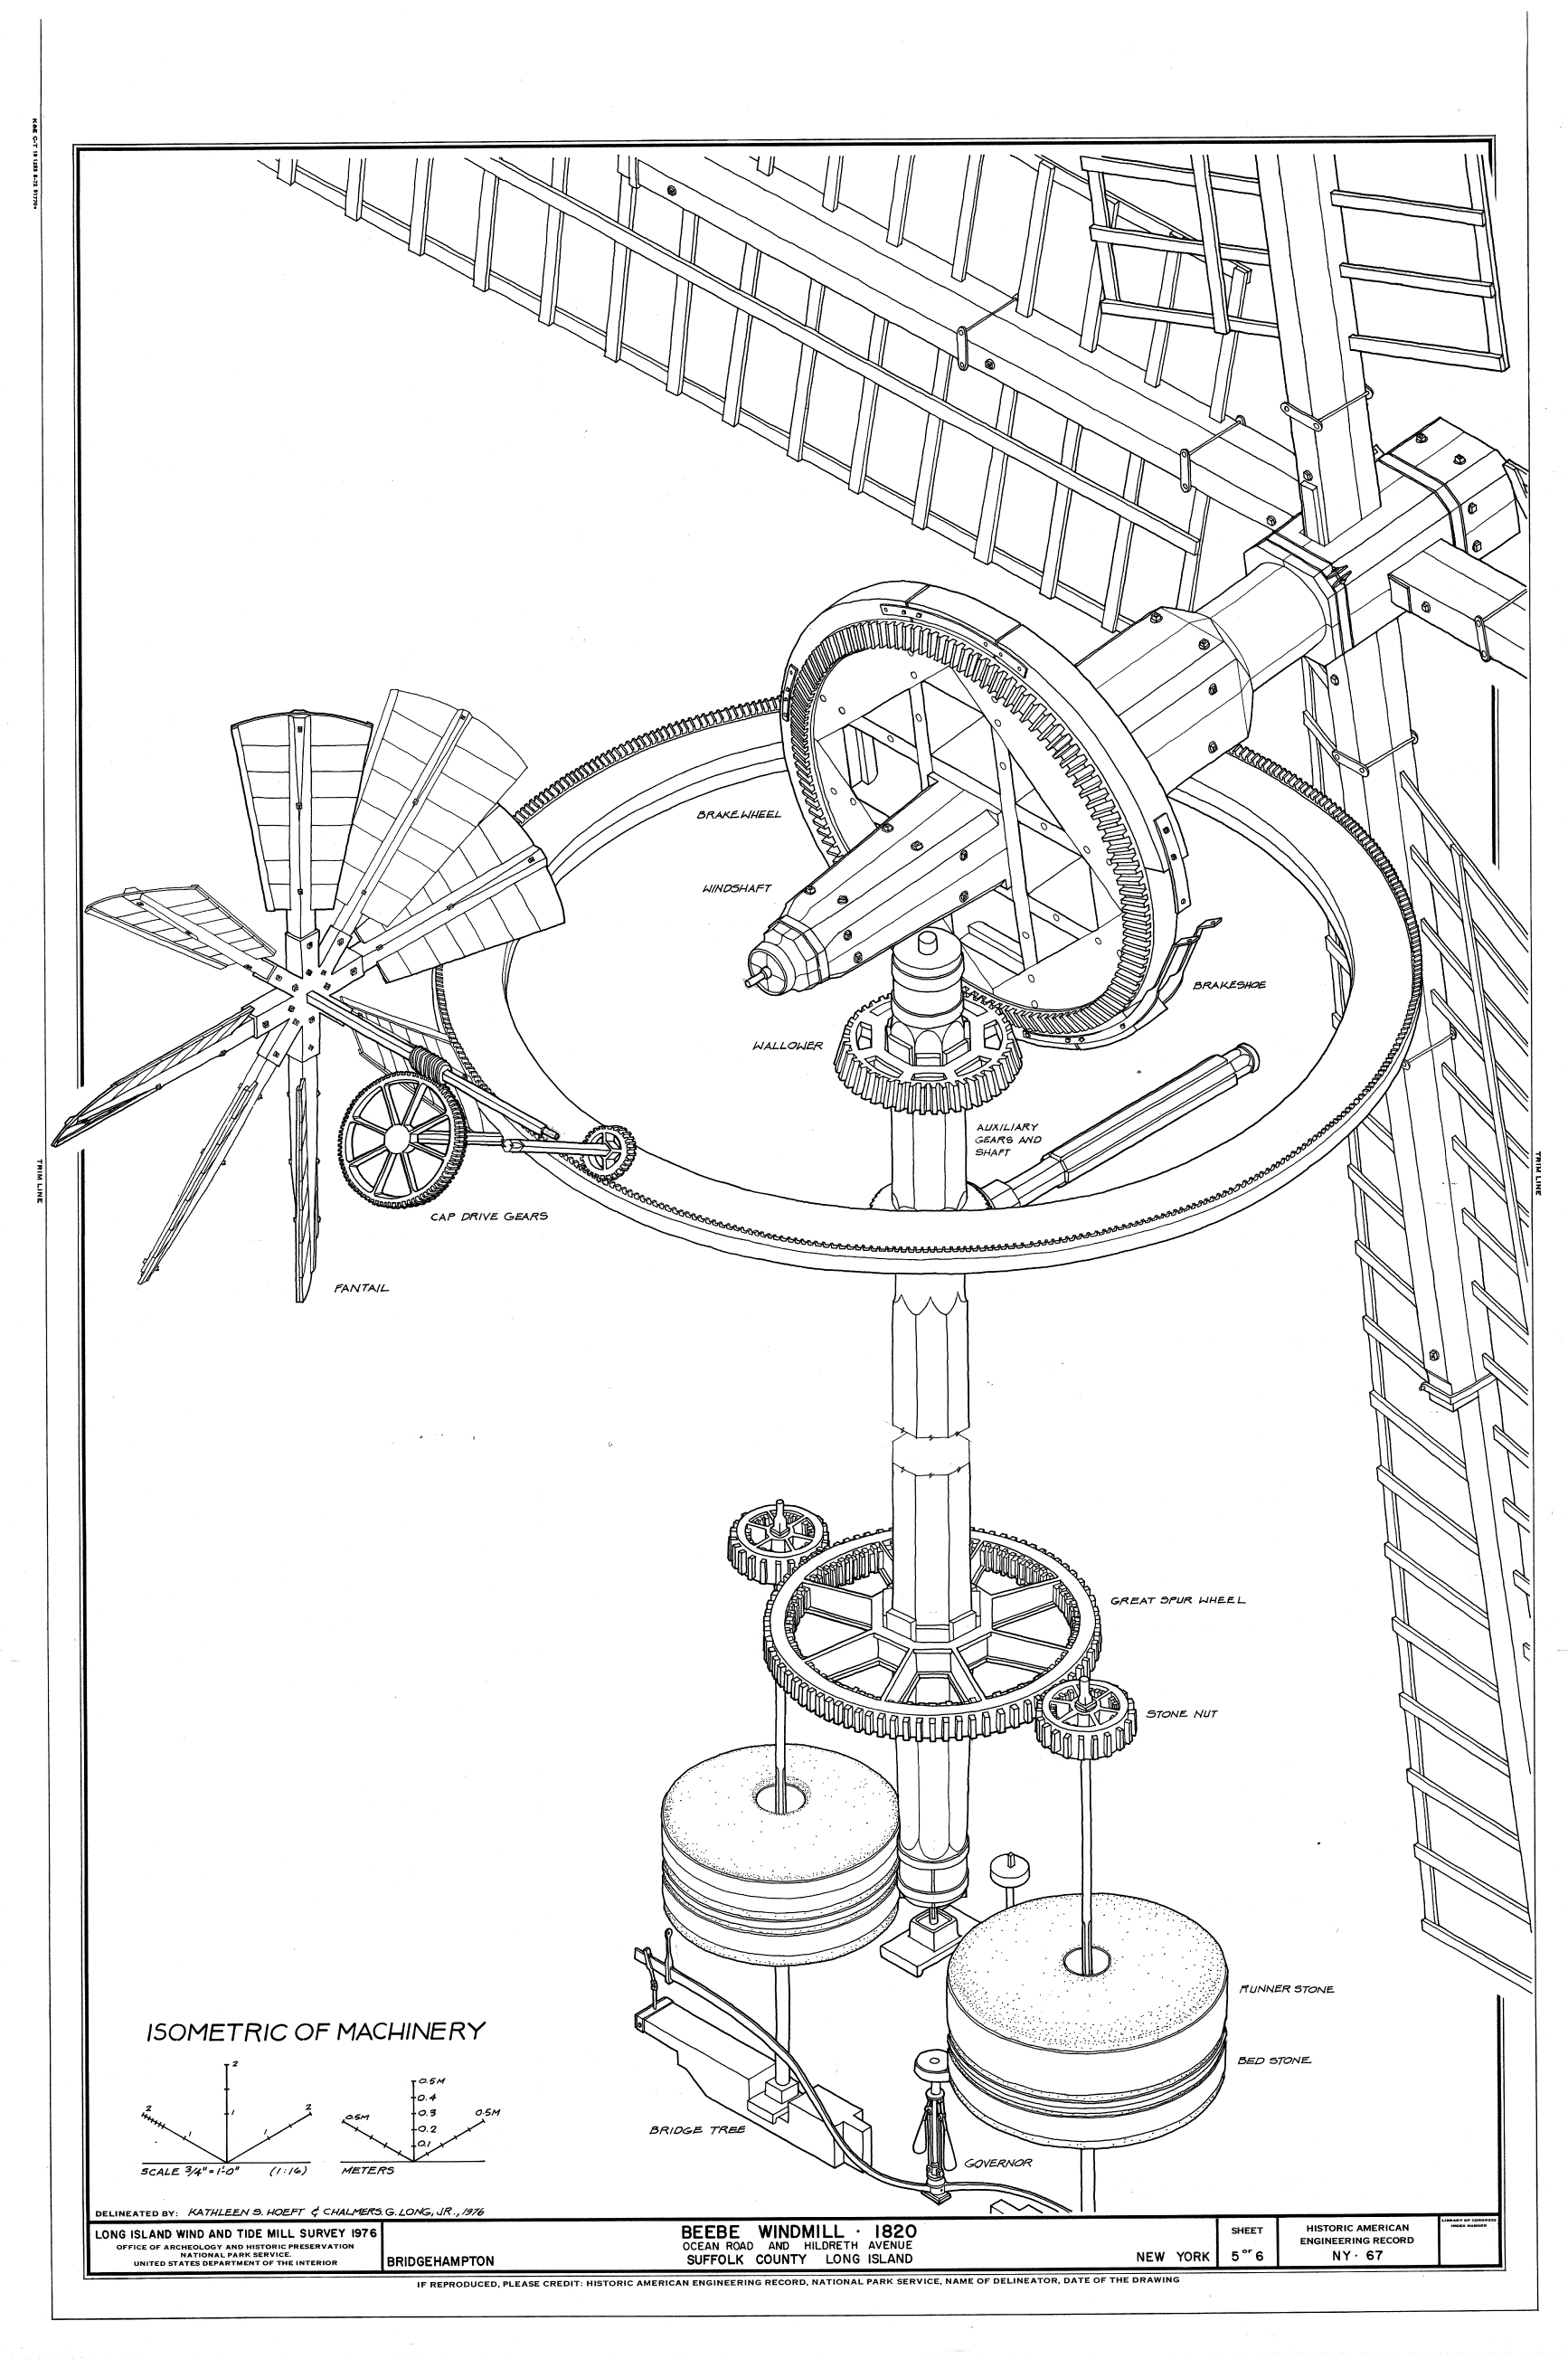 Drawn windmill simple Illustration factories: powered history of